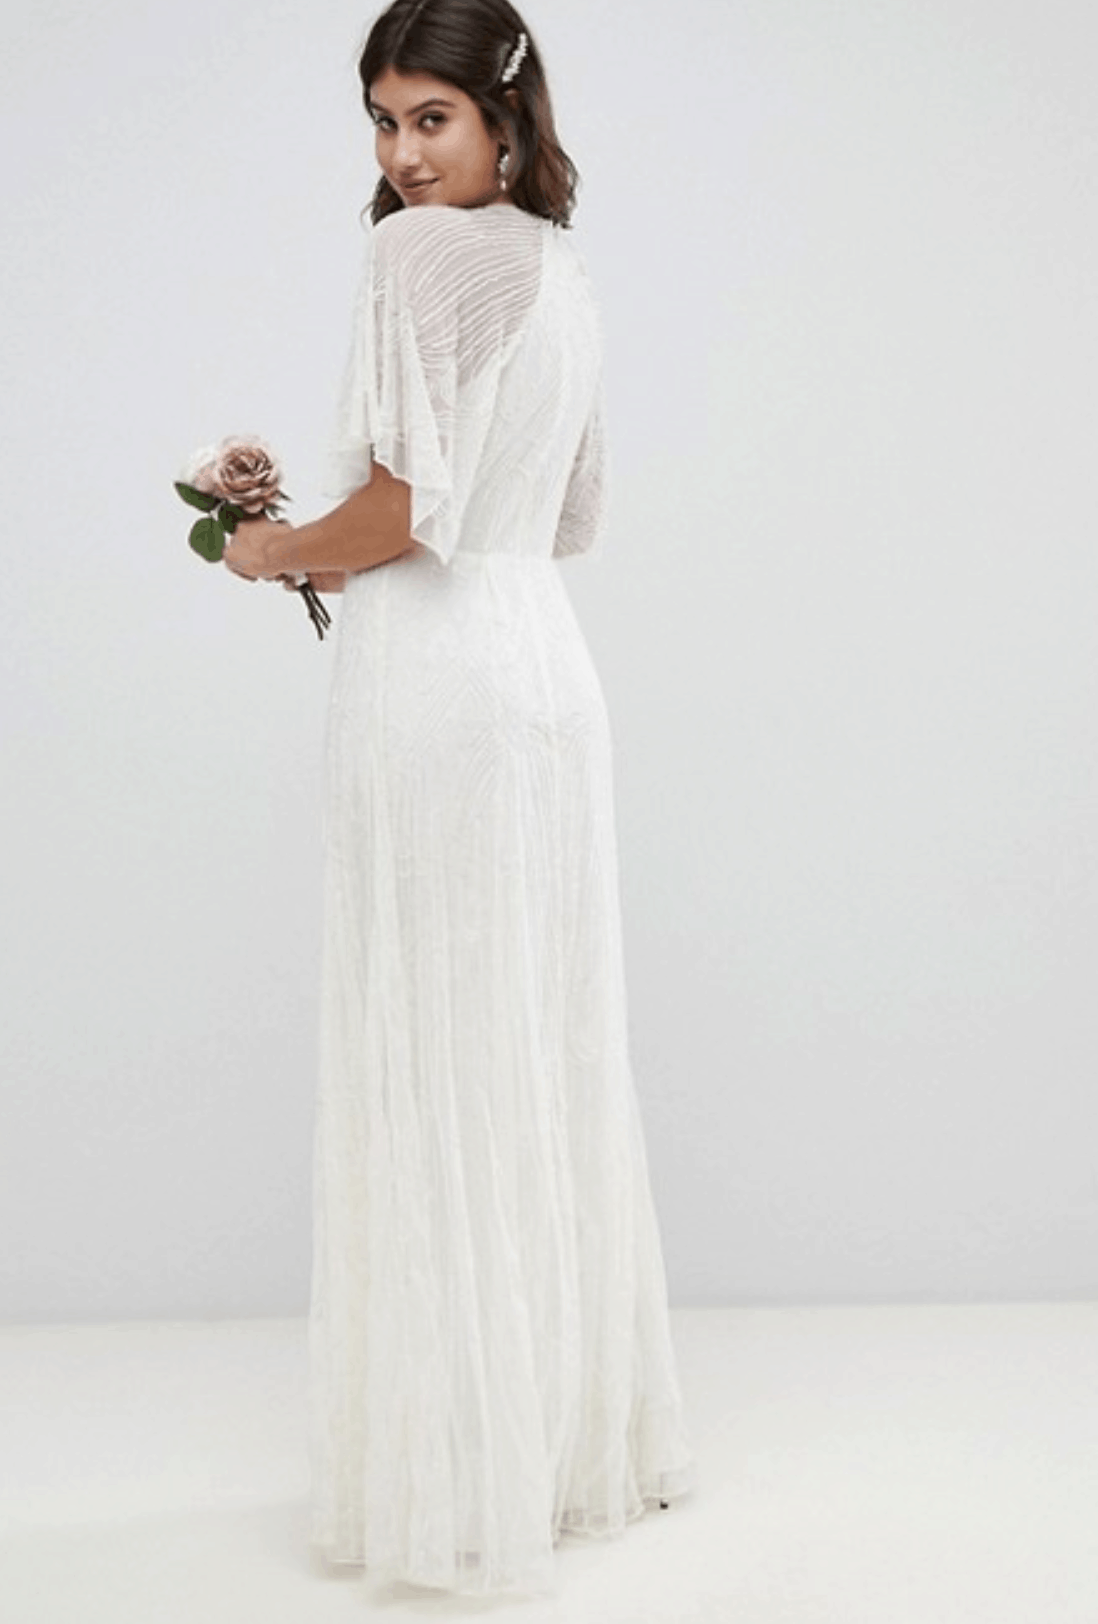 Cheap Affordable Bridal Gowns and Wedding Dresses ASOS Edition Deco Embellished Wedding Dresses